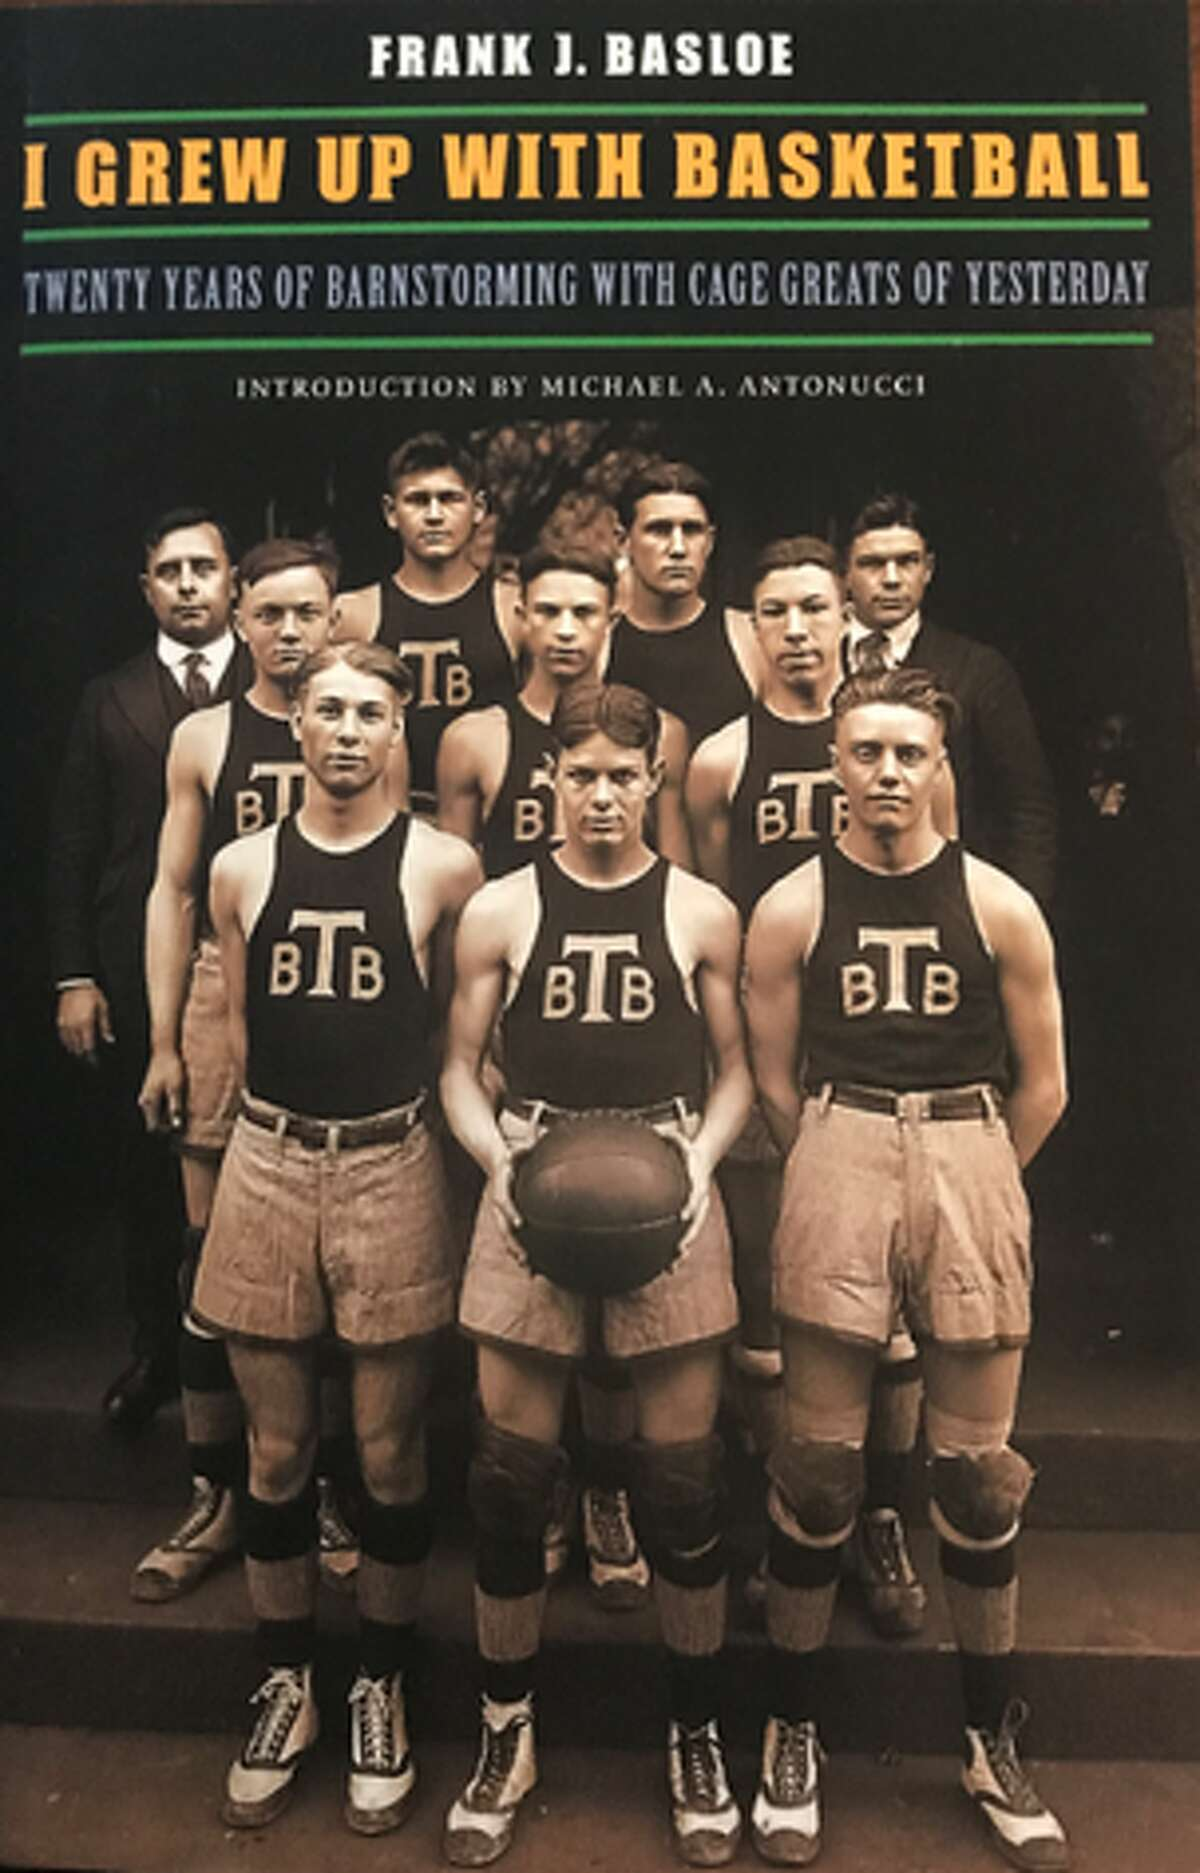 """Frank J. Basloe's 1952 book, """"I Grew Up With Basketball,"""" argues that Lambert Will's team, not James Naismith's team, played basketball months beforeNaismithis generally credited with inventing the gameDec. 12, 1891 in Springfield, Mass."""